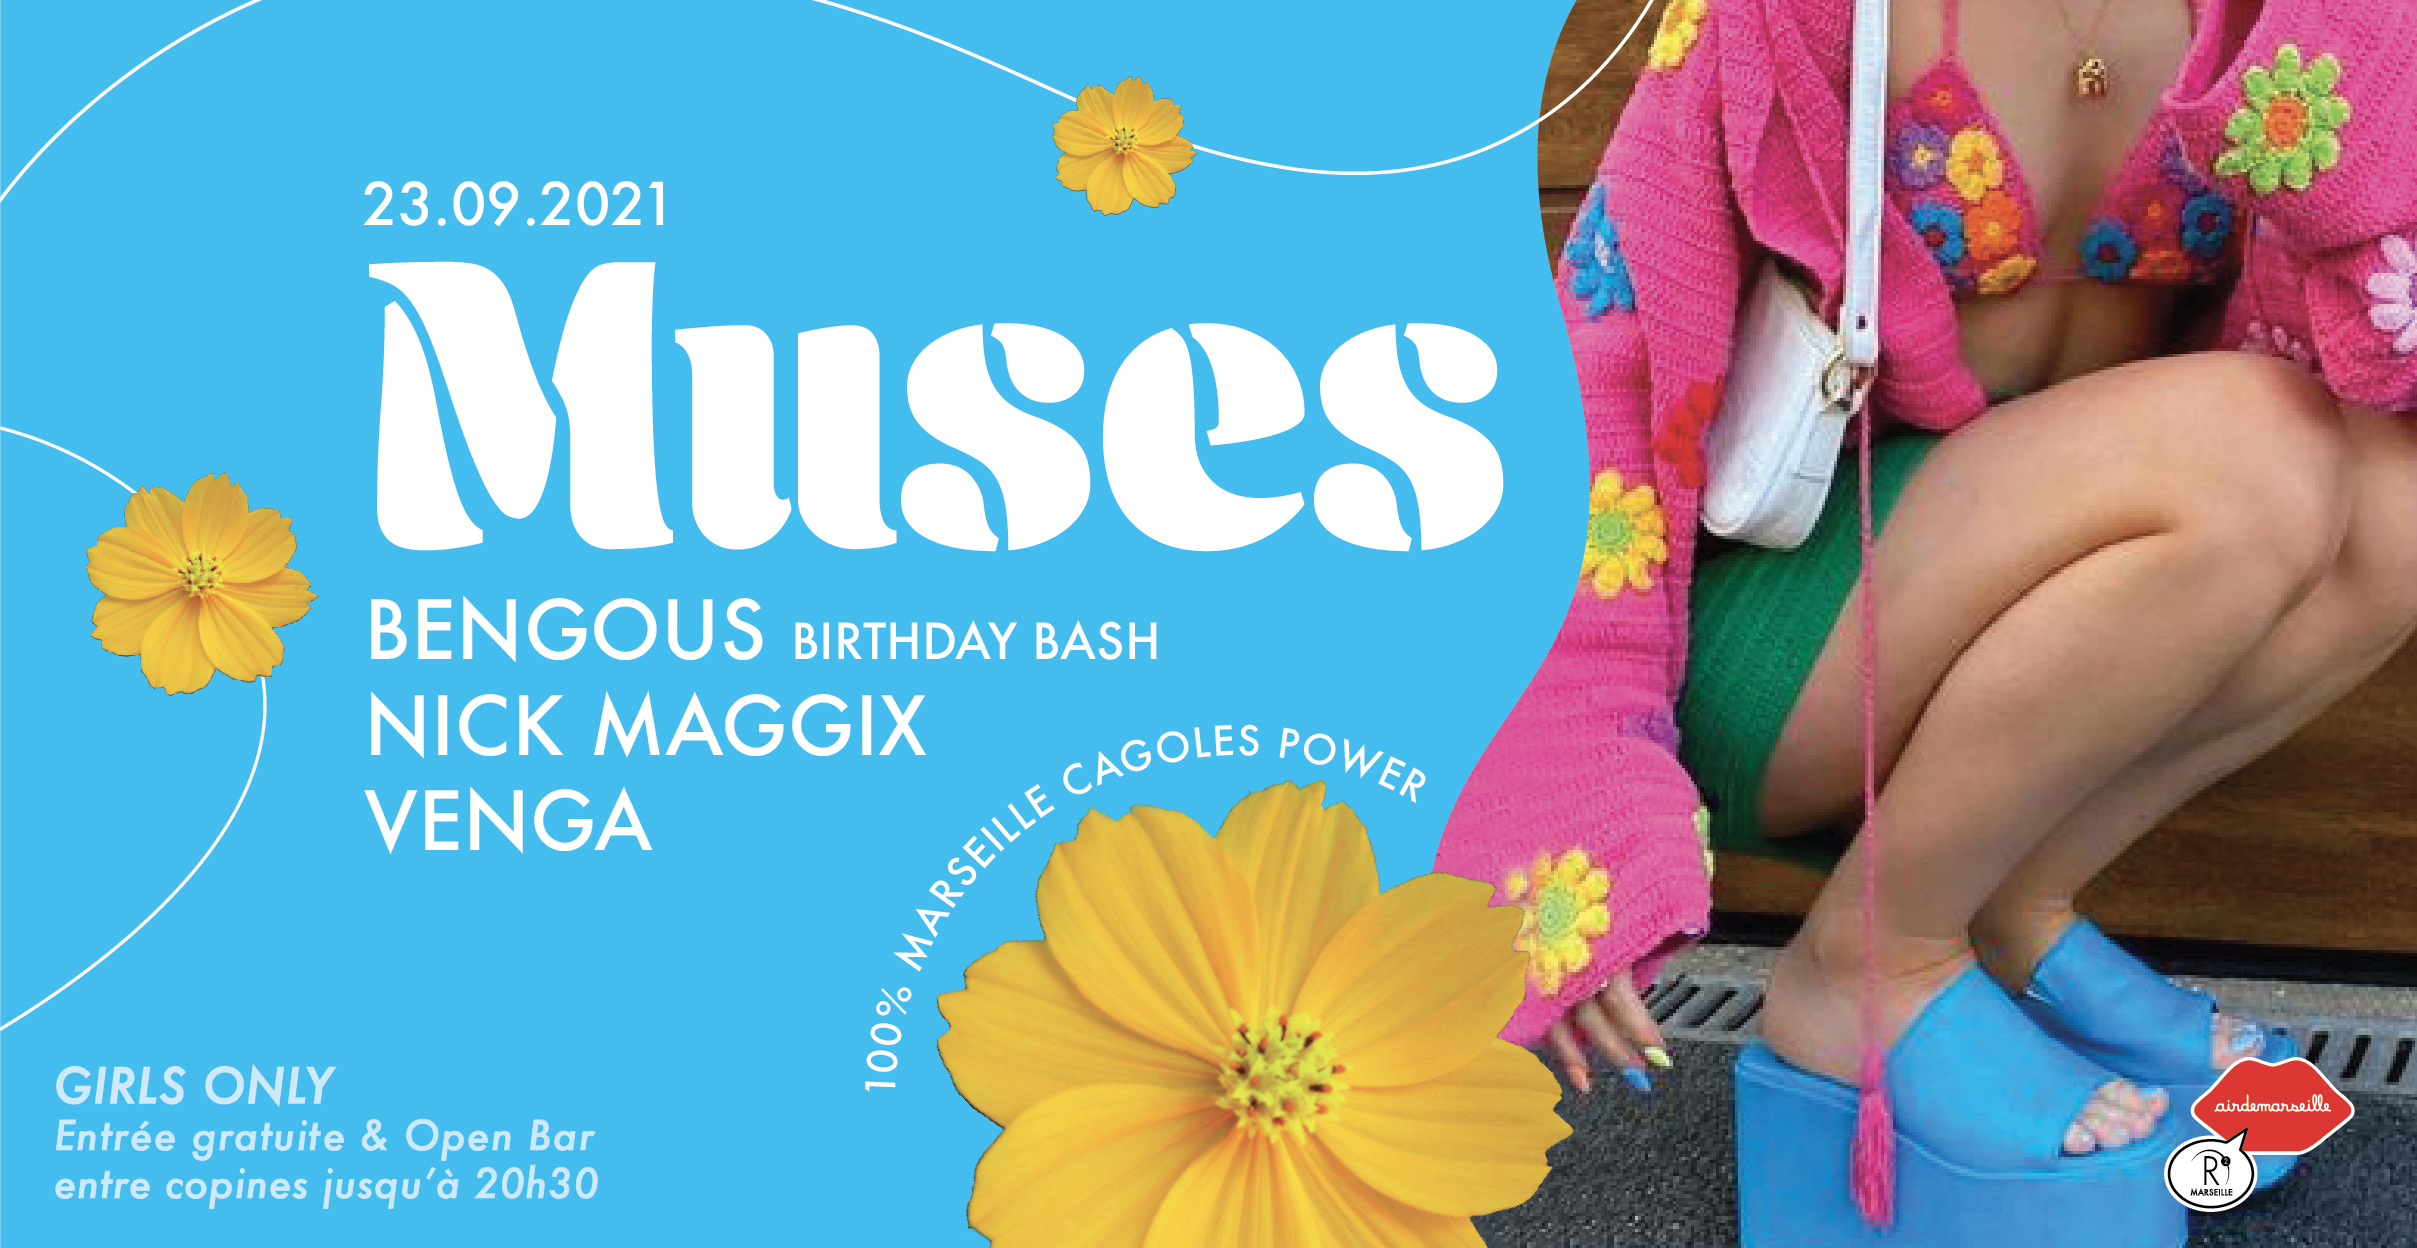 R2 ROOFTOP x MUSES x BENGOUS BIRTHDAY BASH